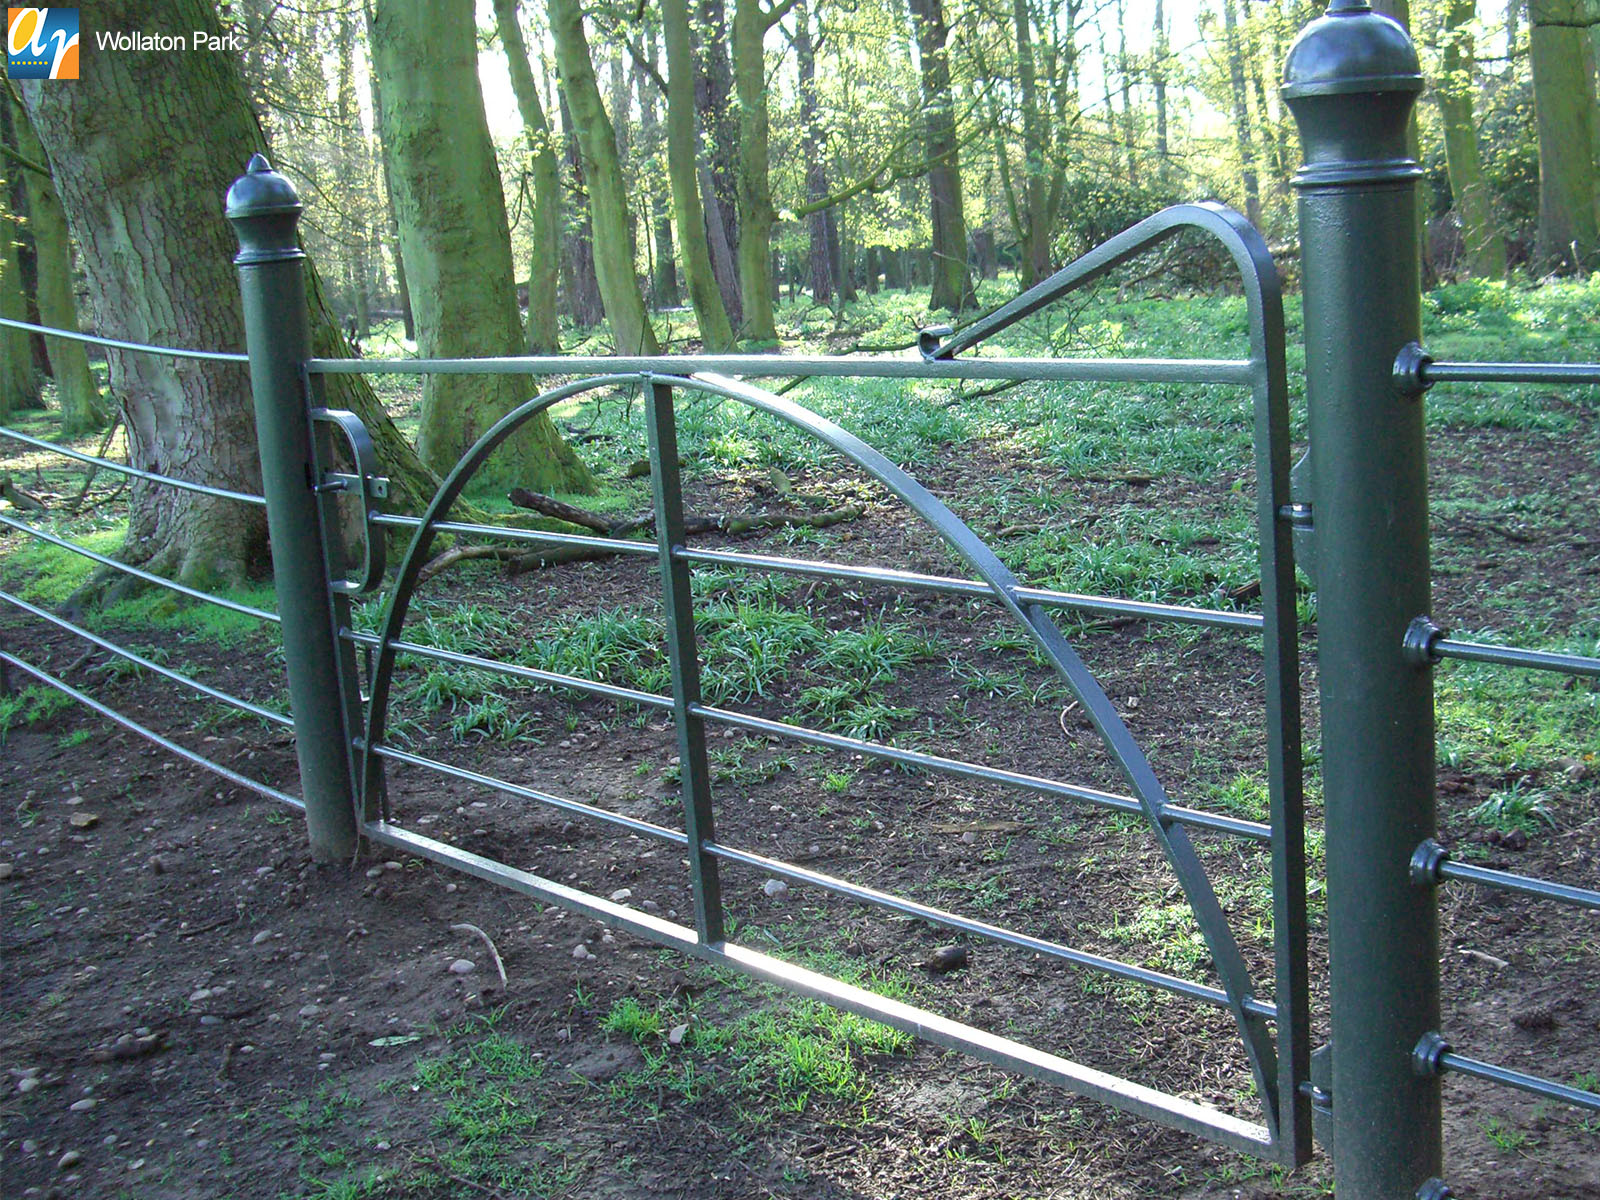 Wollaton Park metal railings and gates